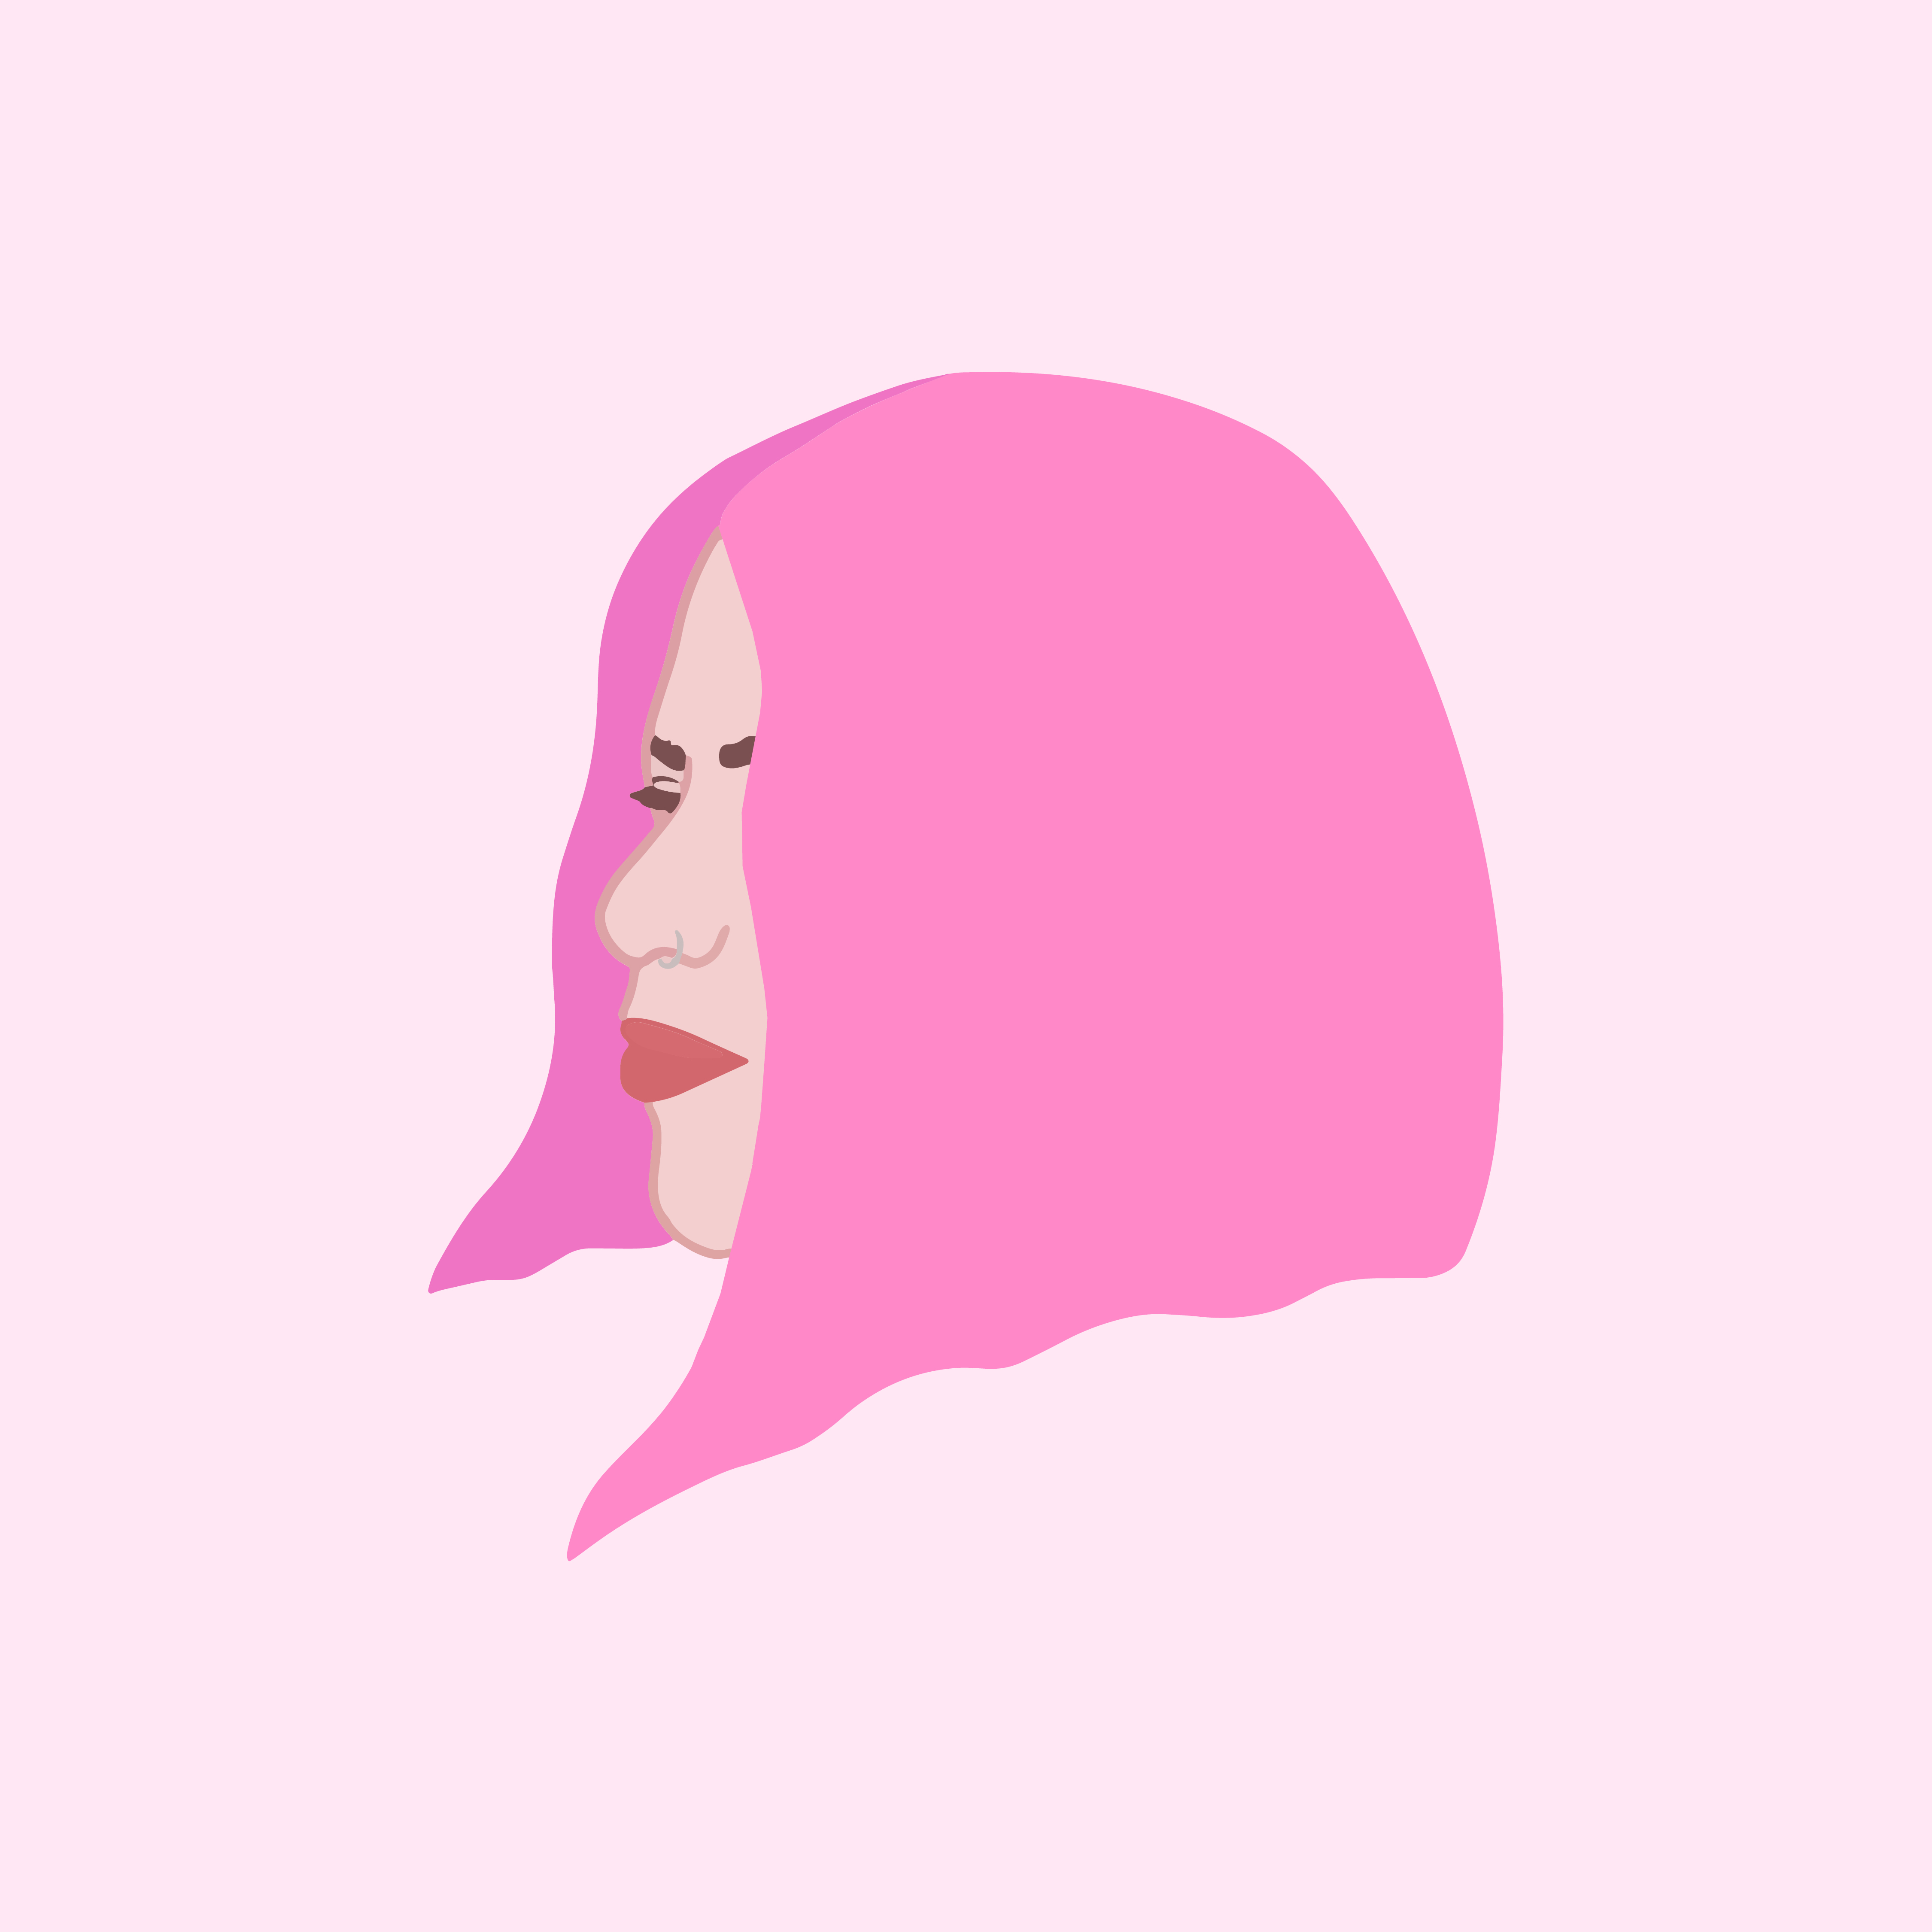 An illustration of a woman in profile with bright pink shoulder length hair on a light pink backgound. She is wearing red lipstick and has a ring in her nose.